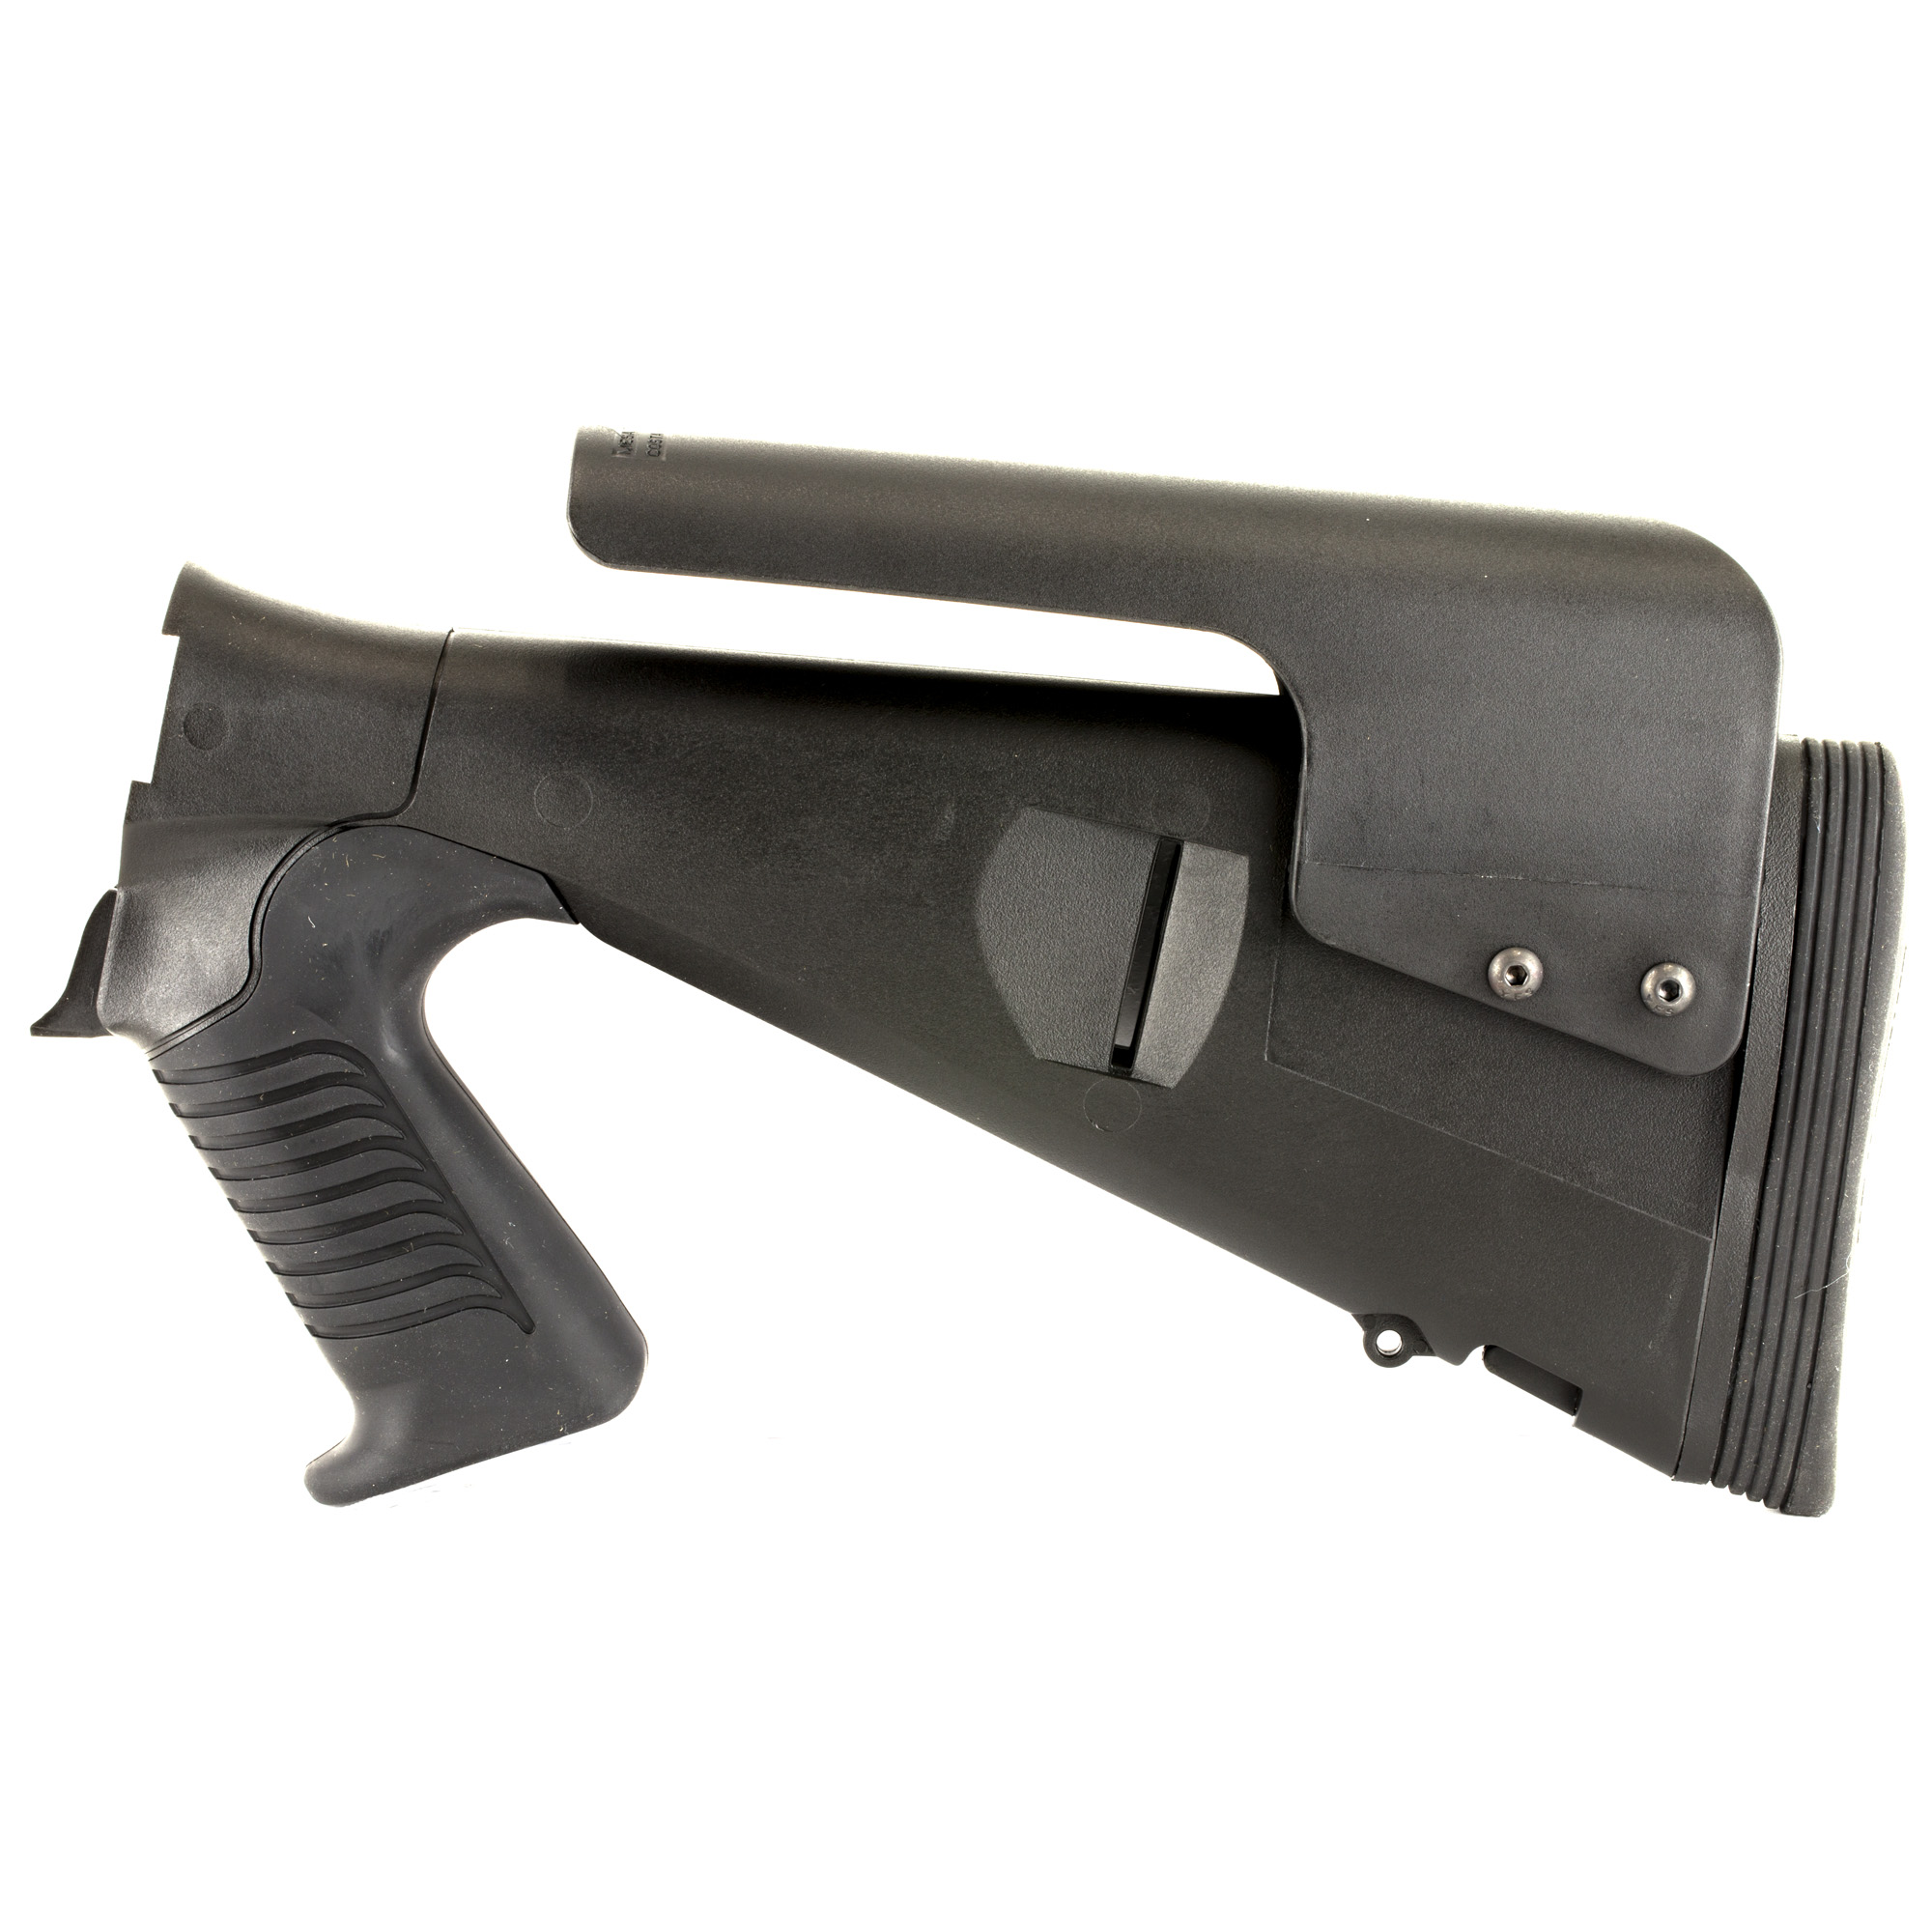 """Mesa Tactical's Urbino Pistol Grip Stock for the Benelli M4 is very popular in the law enforcement market due to the shorter length of pull"""" allowing the user to wear body armor or bulky clothing without extending their reach. The reduced length-of-pull (LoP) makes the Urbino the first truly tactical stock for the Benelli M4. The Urbino Tactical stock is durable"""" easy to shoulder and will not slip. It is a fixed-length pistol grip shotgun stock made from injection-molded glass-filled nylon. Developed to meet the needs of law enforcement and military operators"""" the rugged Urbino Tactical stock features a 12 1/2"""" inch LoP"""" soft urethane rubber grip"""" adjustable cheek riser and Limbsaver Butt pad."""